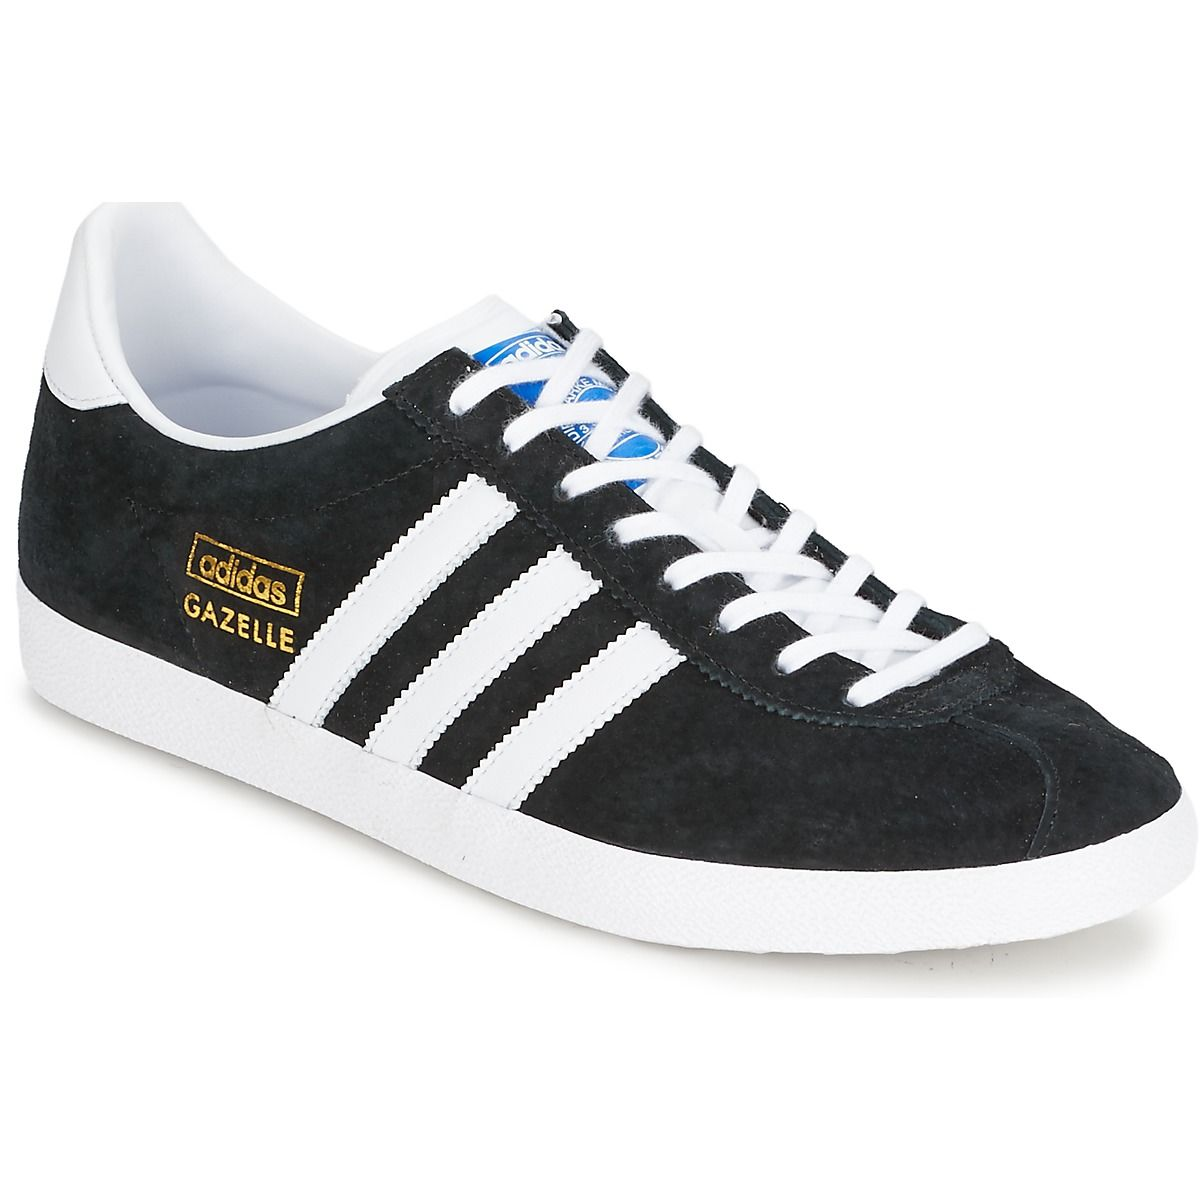 Baskets Or OG Adidas basses Noir Blanc Originals GAZELLE CxCrTqA